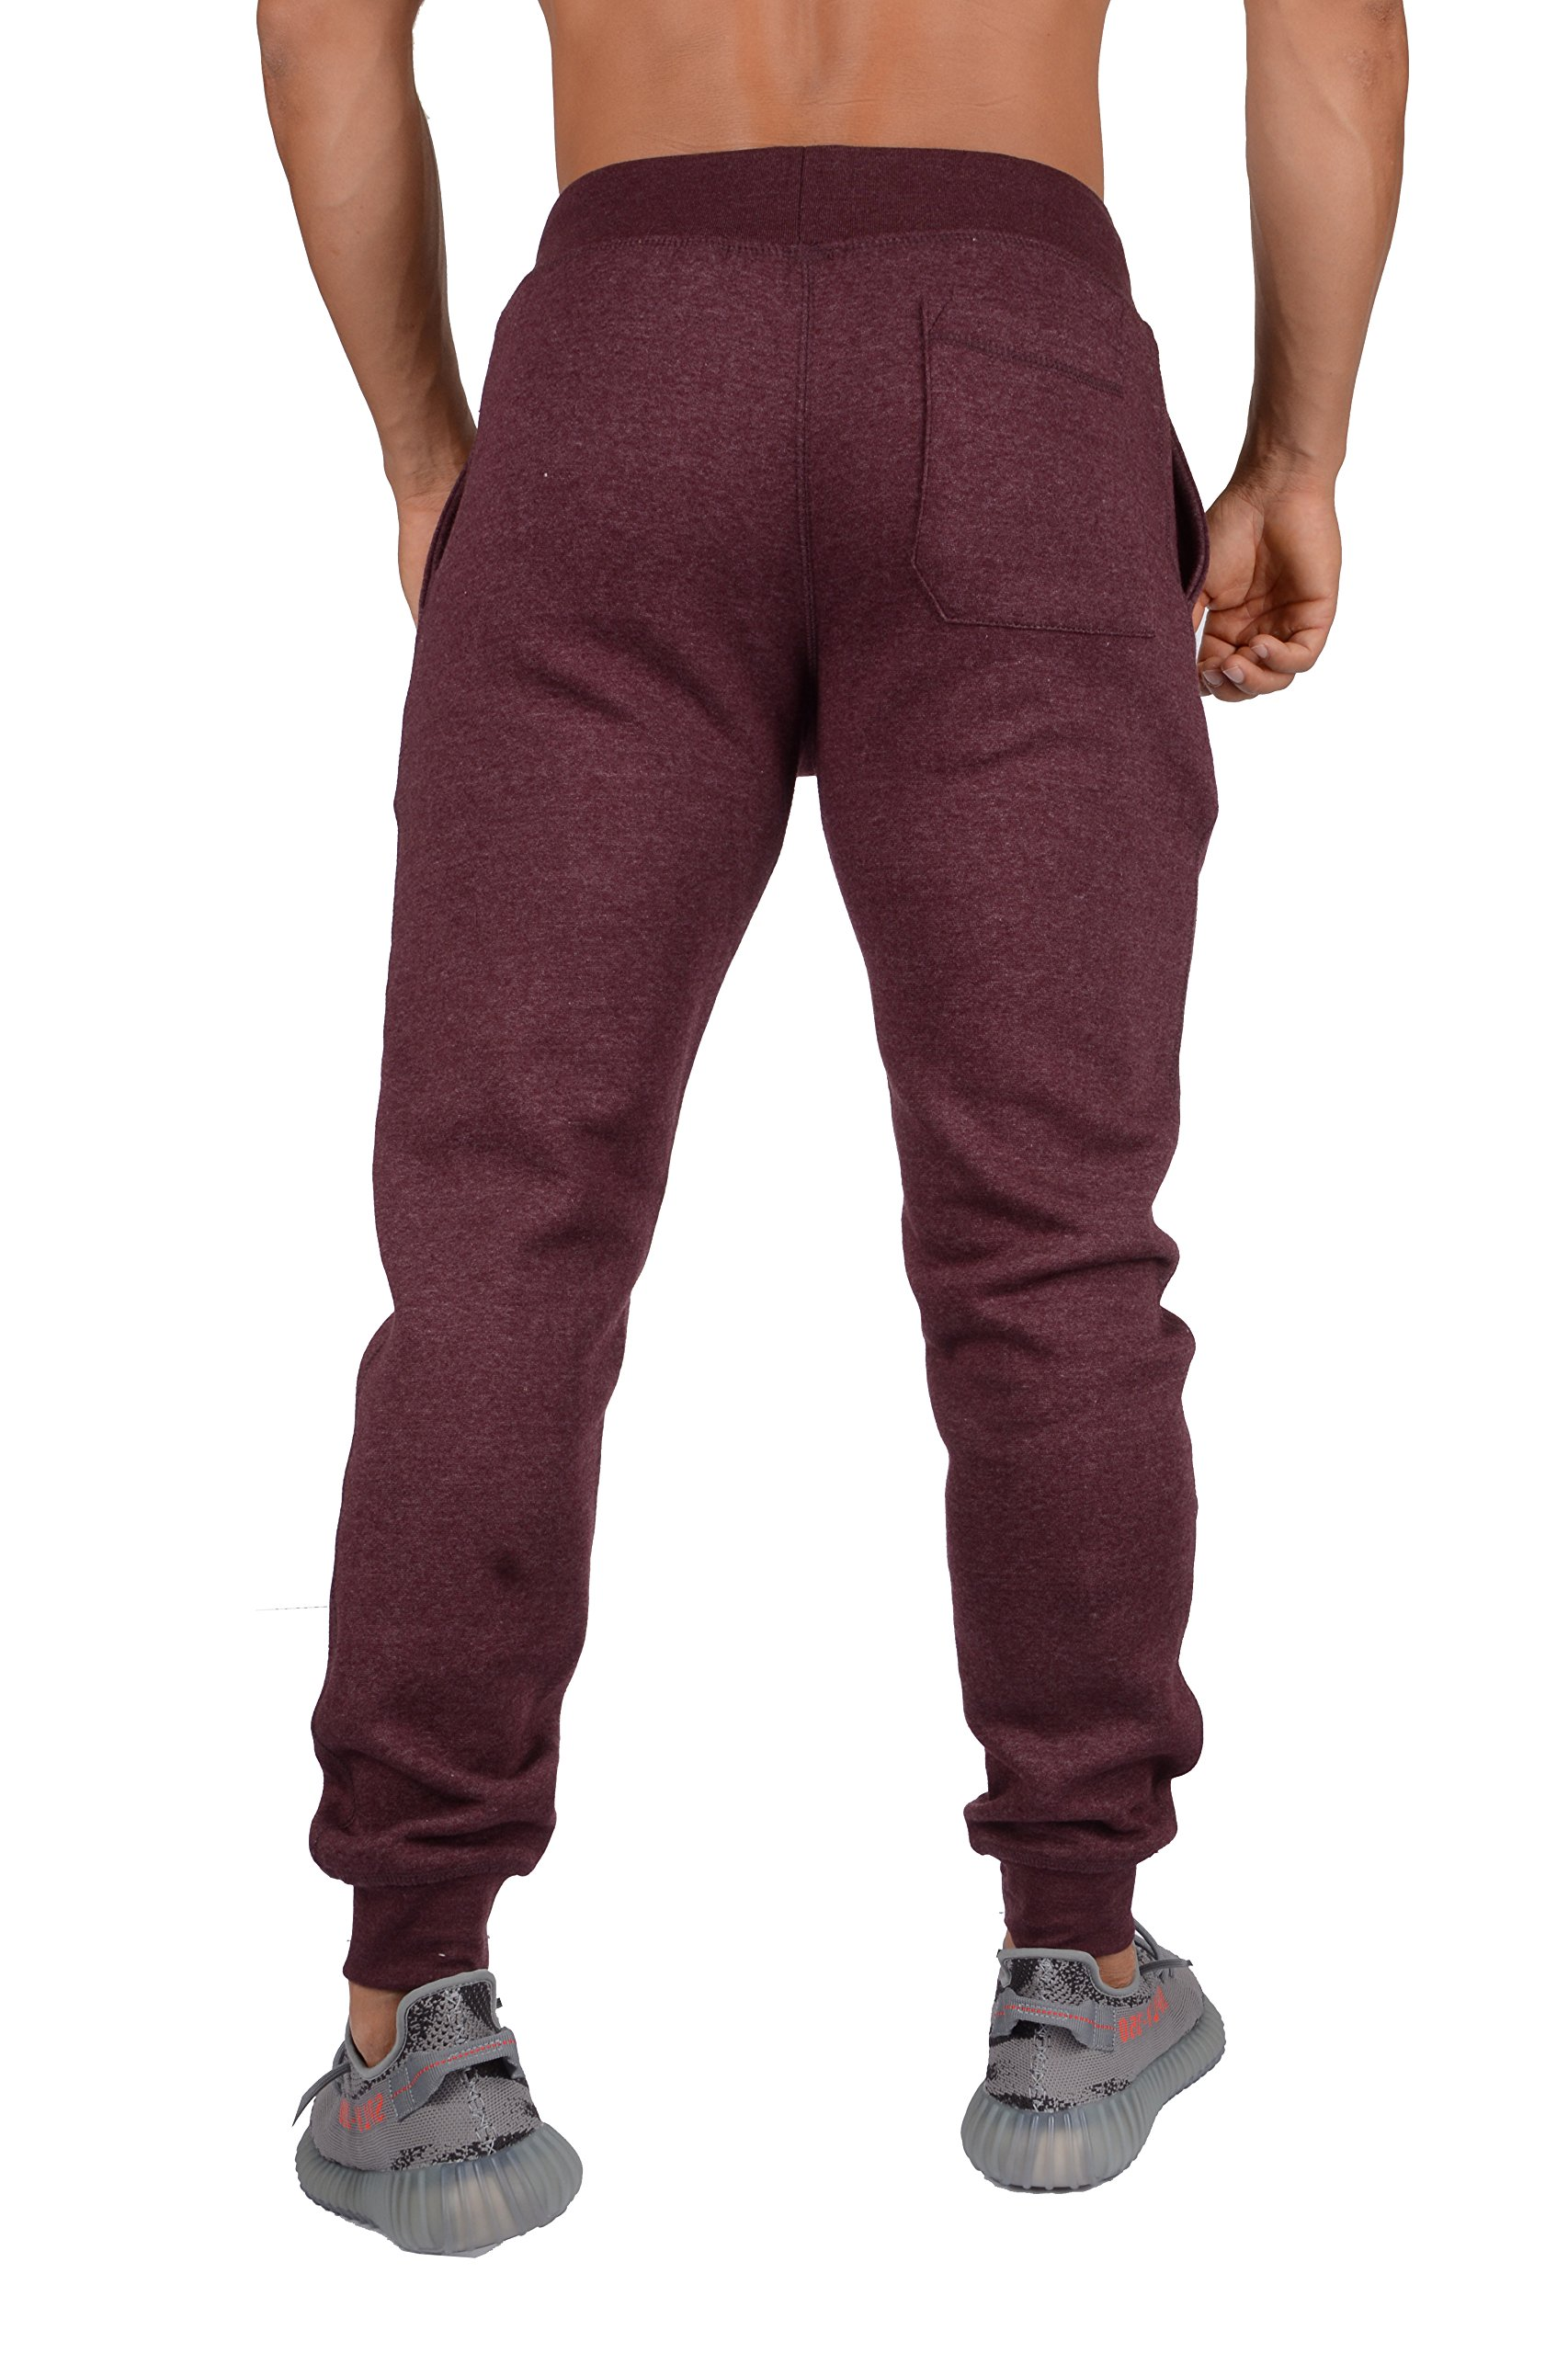 YoungLA Mens Slim Fit Joggers Fitness Activewear Sports Fleece Sweatpants for Gym Training Burgundy Heather Small by YoungLA (Image #4)